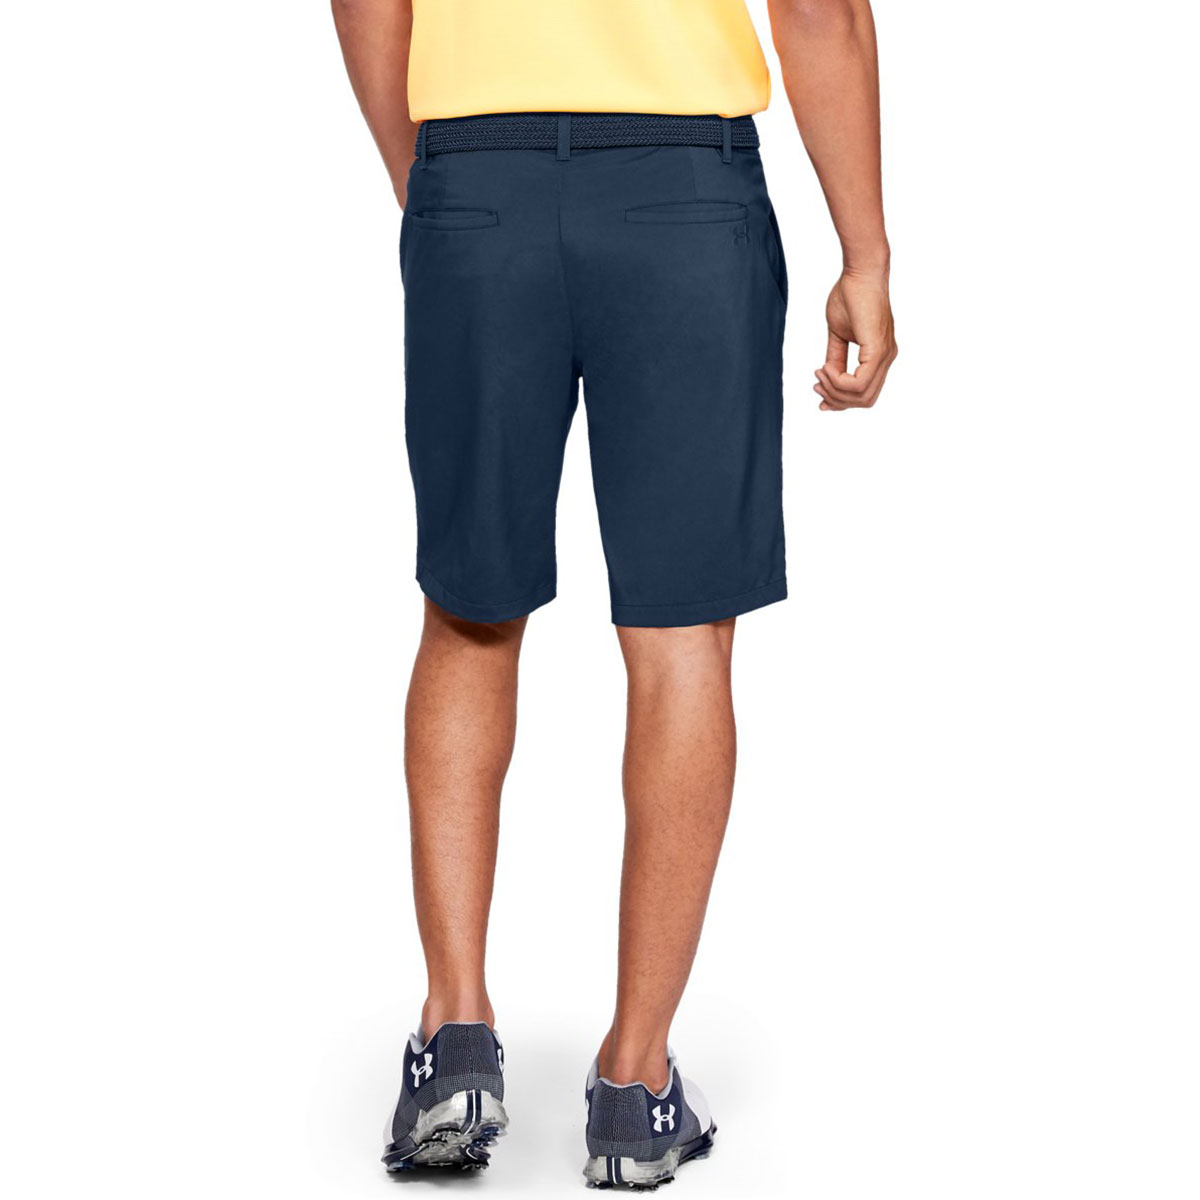 Under-Armour-Mens-EU-Tech-Stretch-Soft-Fitted-Golf-Shorts Indexbild 11